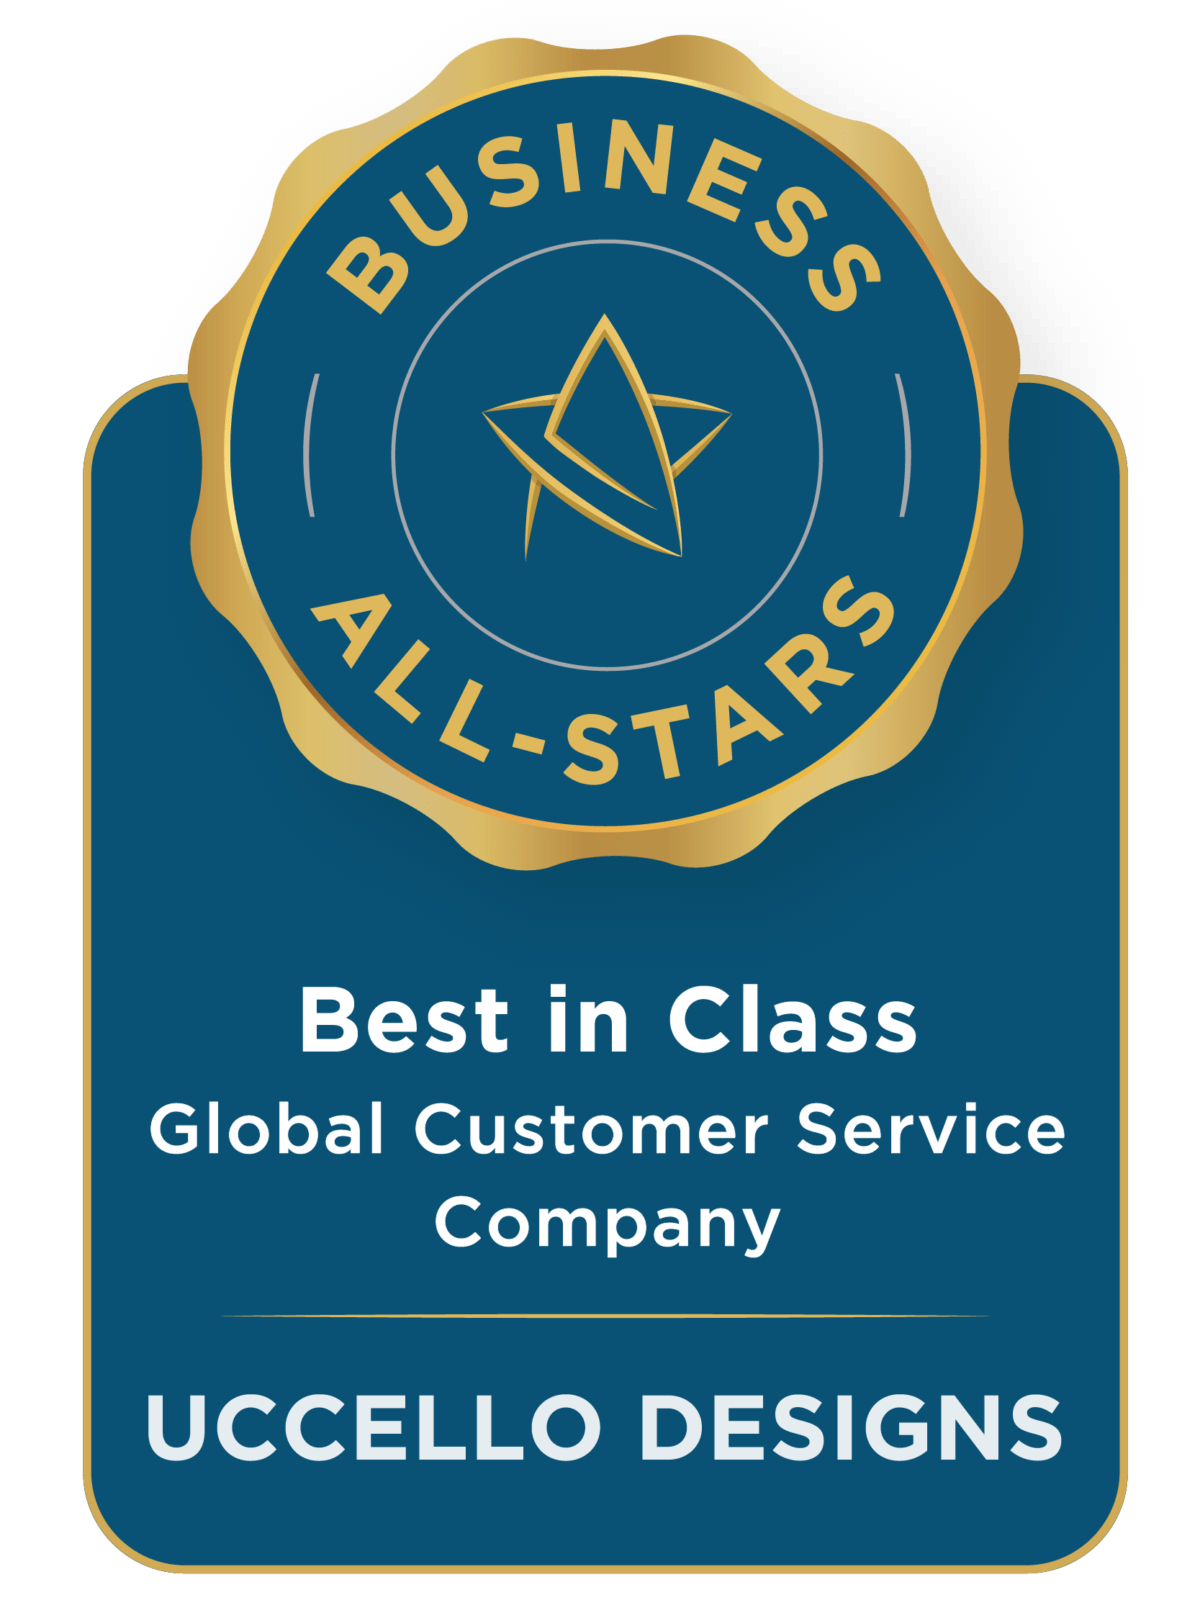 Best in Class Global Customer Service Award